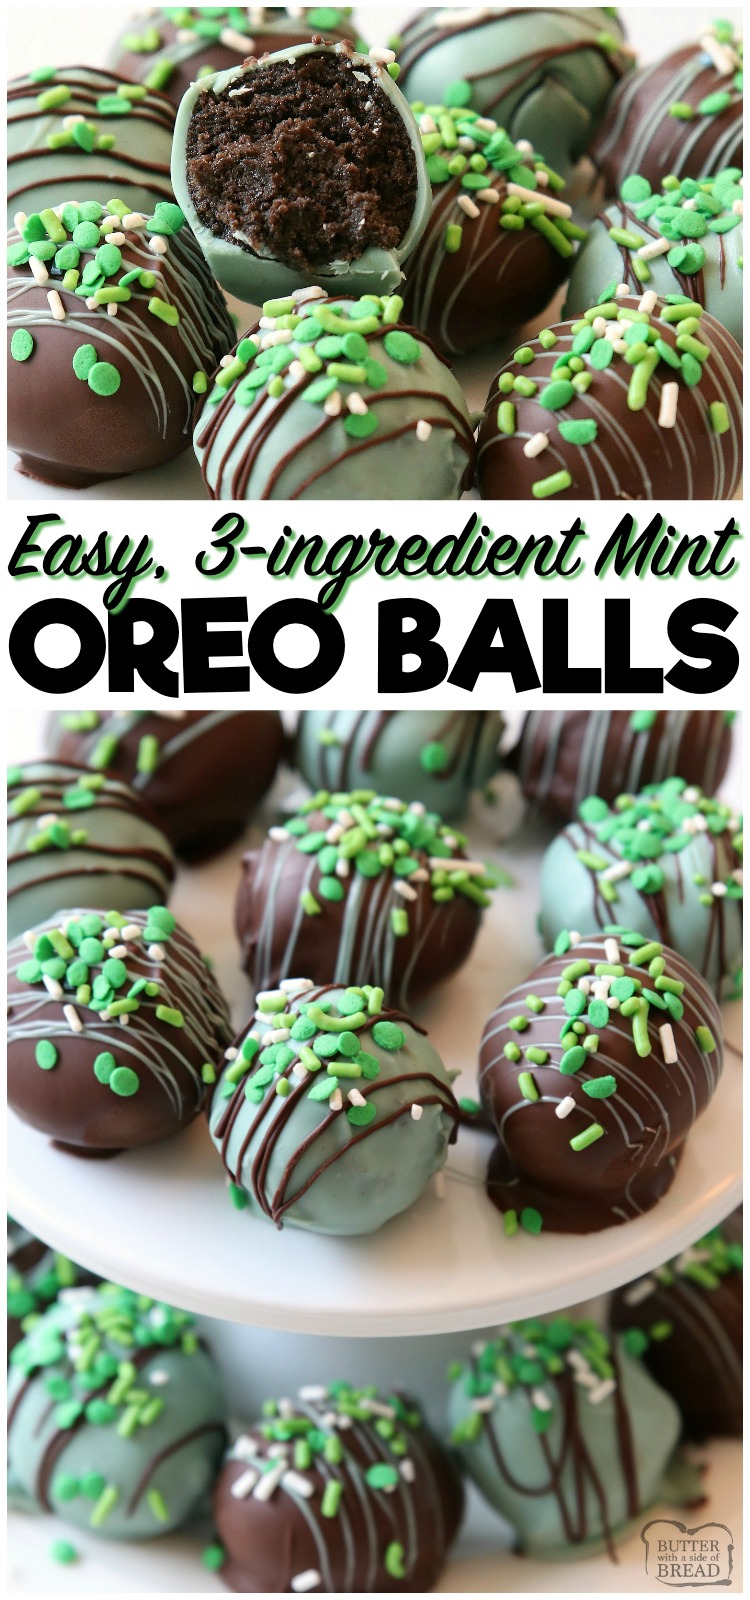 Mint Oreo Balls made with just 3 ingredients & perfect for St. Patrick's Day! Made in minutes and so delicious, no one can guess they're made with Oreo cookies!